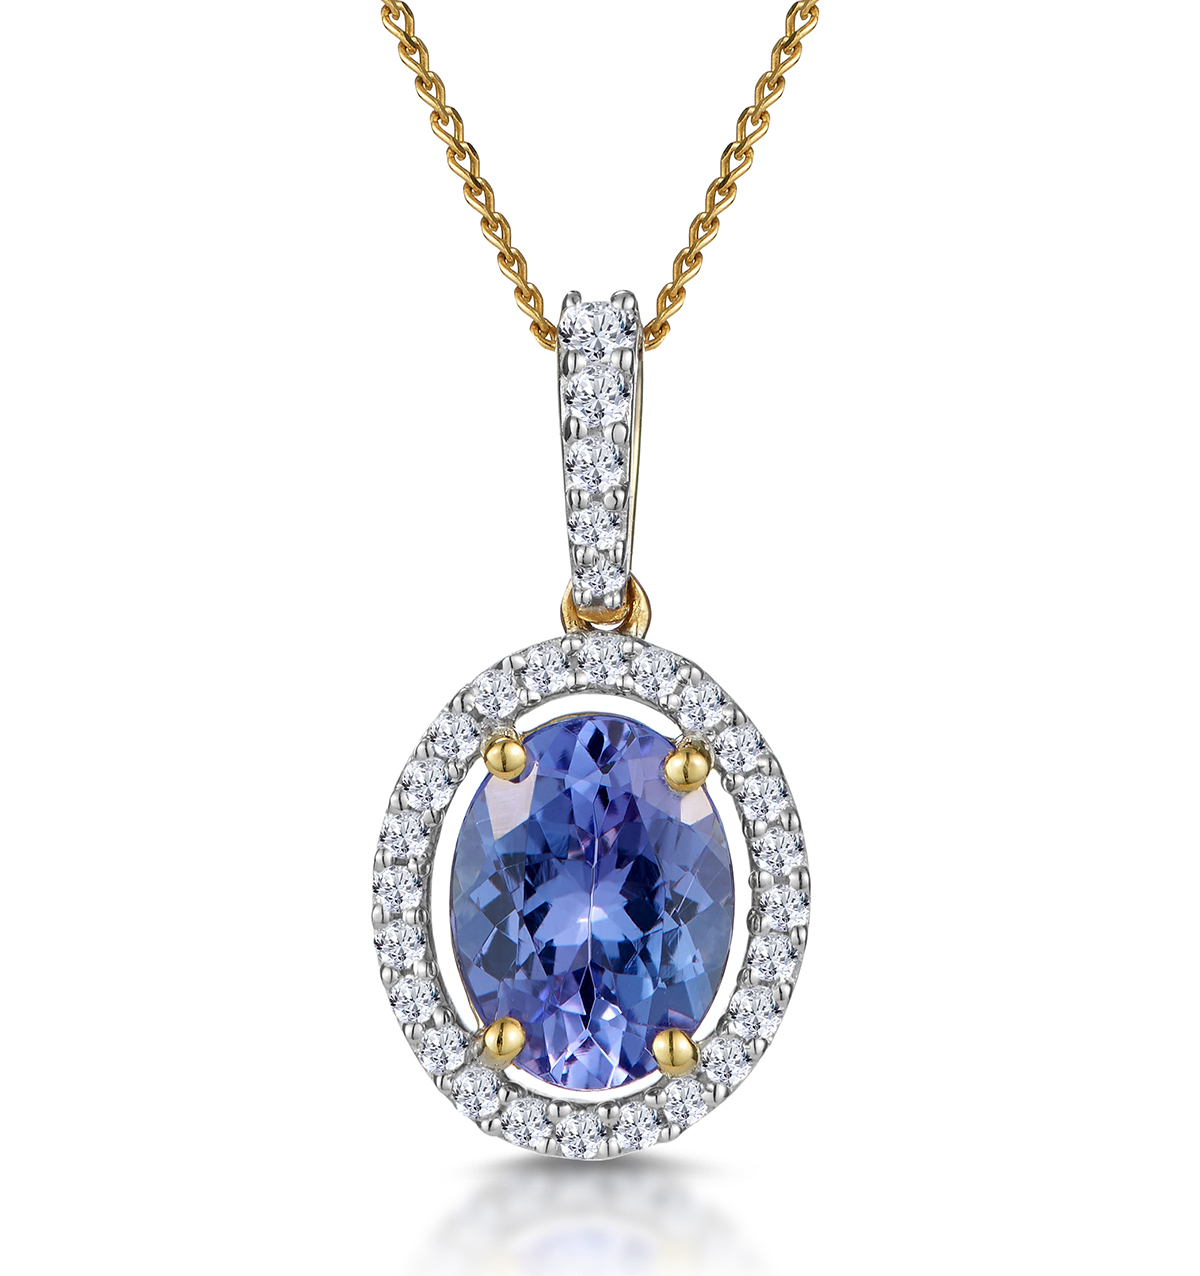 1CT TANZANITE AND DIAMOND HALO OVAL ASTERIA  NECKLACE IN 18K GOLD